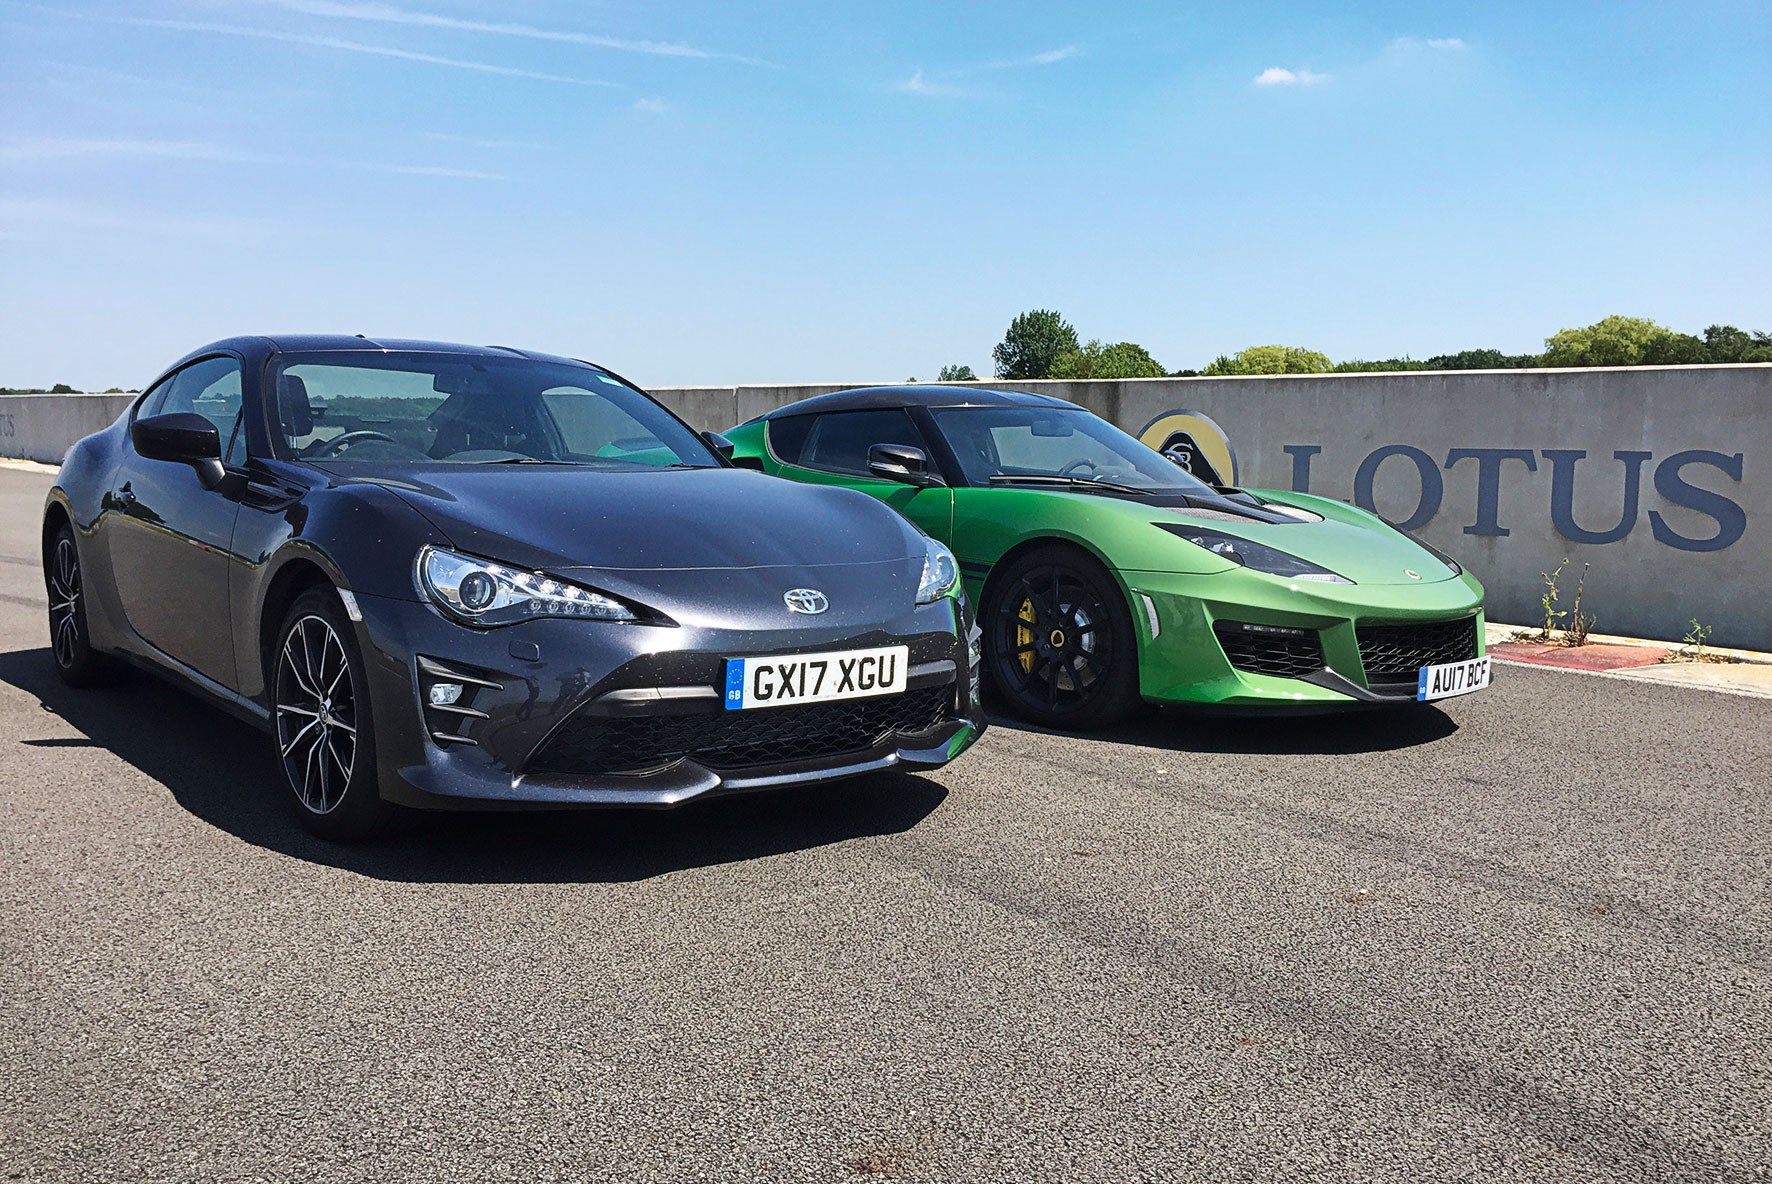 Our Toyota Gt86 Pro Meets A Lotus Evora Sport 410 Car S